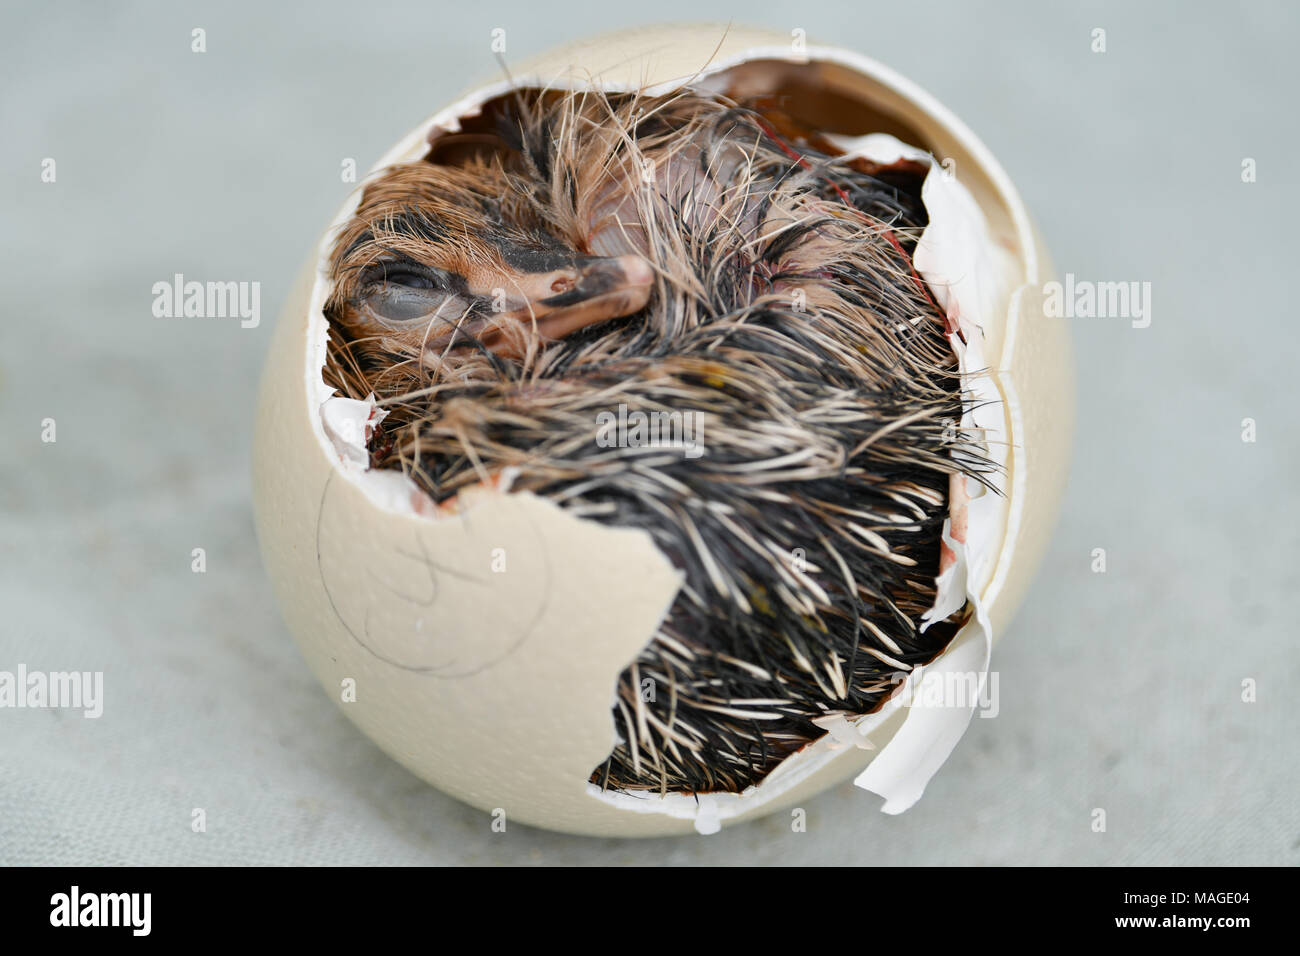 30 March 2018, Germany, Ruelzheim: A Baby ostriches of the subspecies blue-necked ostrich coming out of its egg in the breed station of the ostrich farm 'Mhou'. Photo: Uwe Anspach/dpa - Stock Image